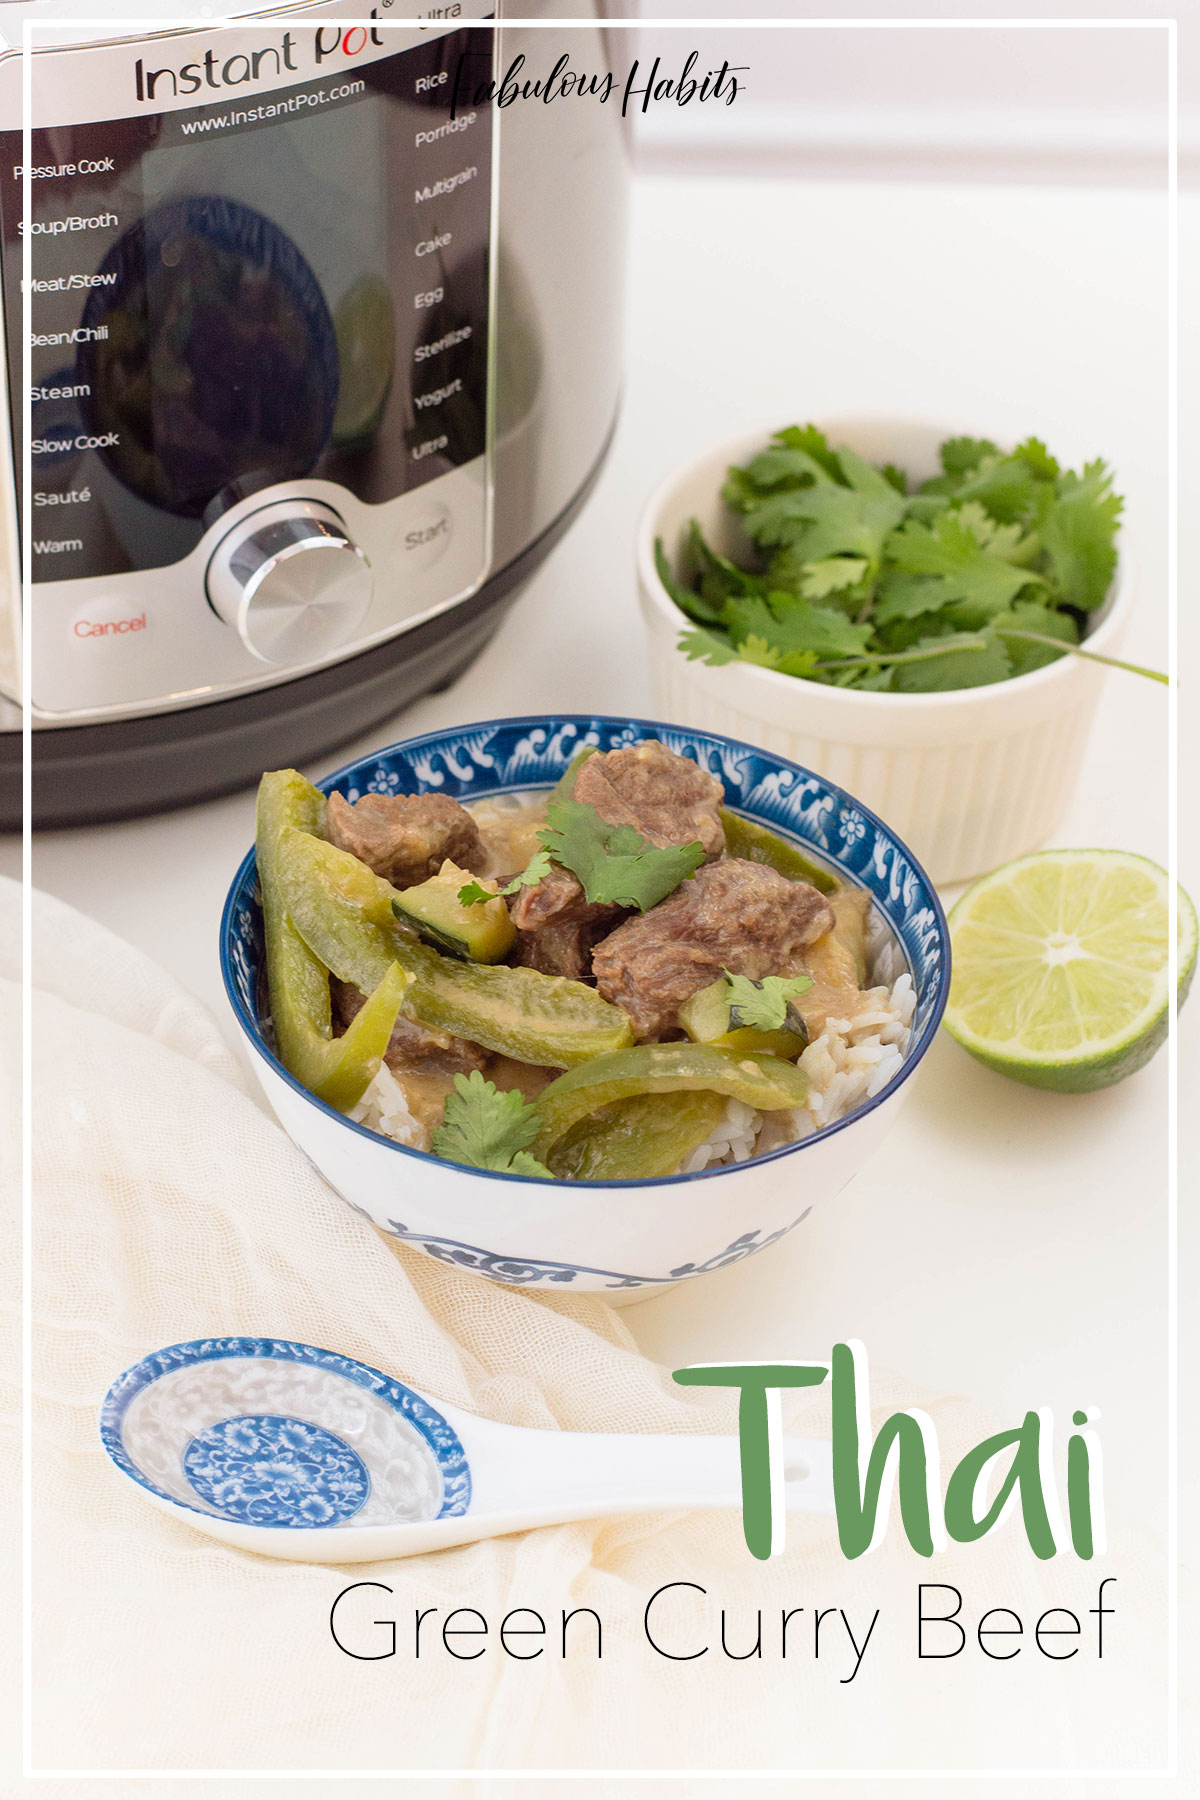 Craving curry? Our recipe for Thai Green Curry Beef is made in the Instant Pot so it's easy and oh-so delicious!